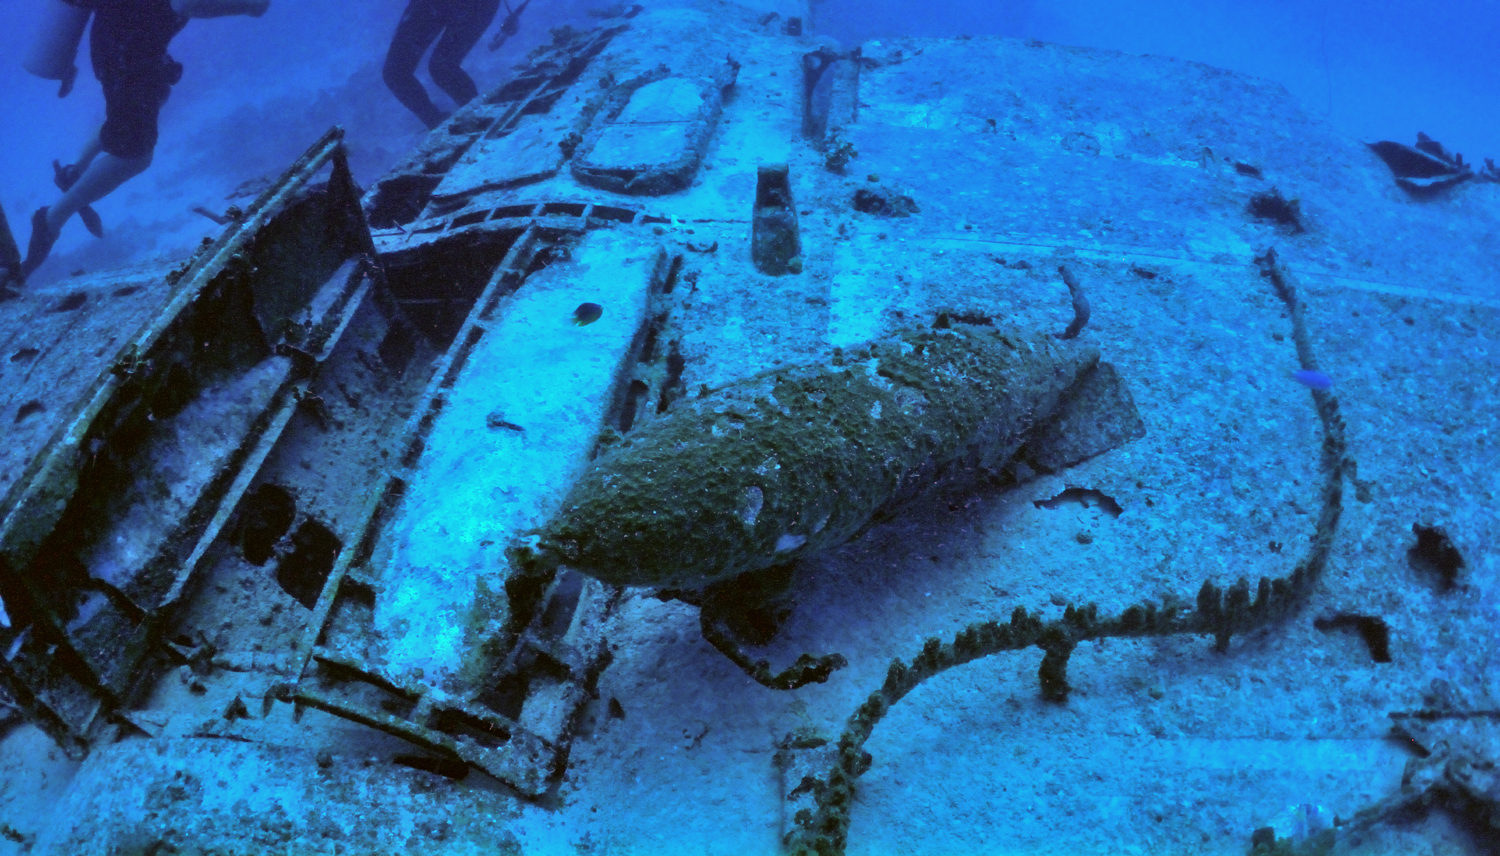 A bomb is still visible on the wreck